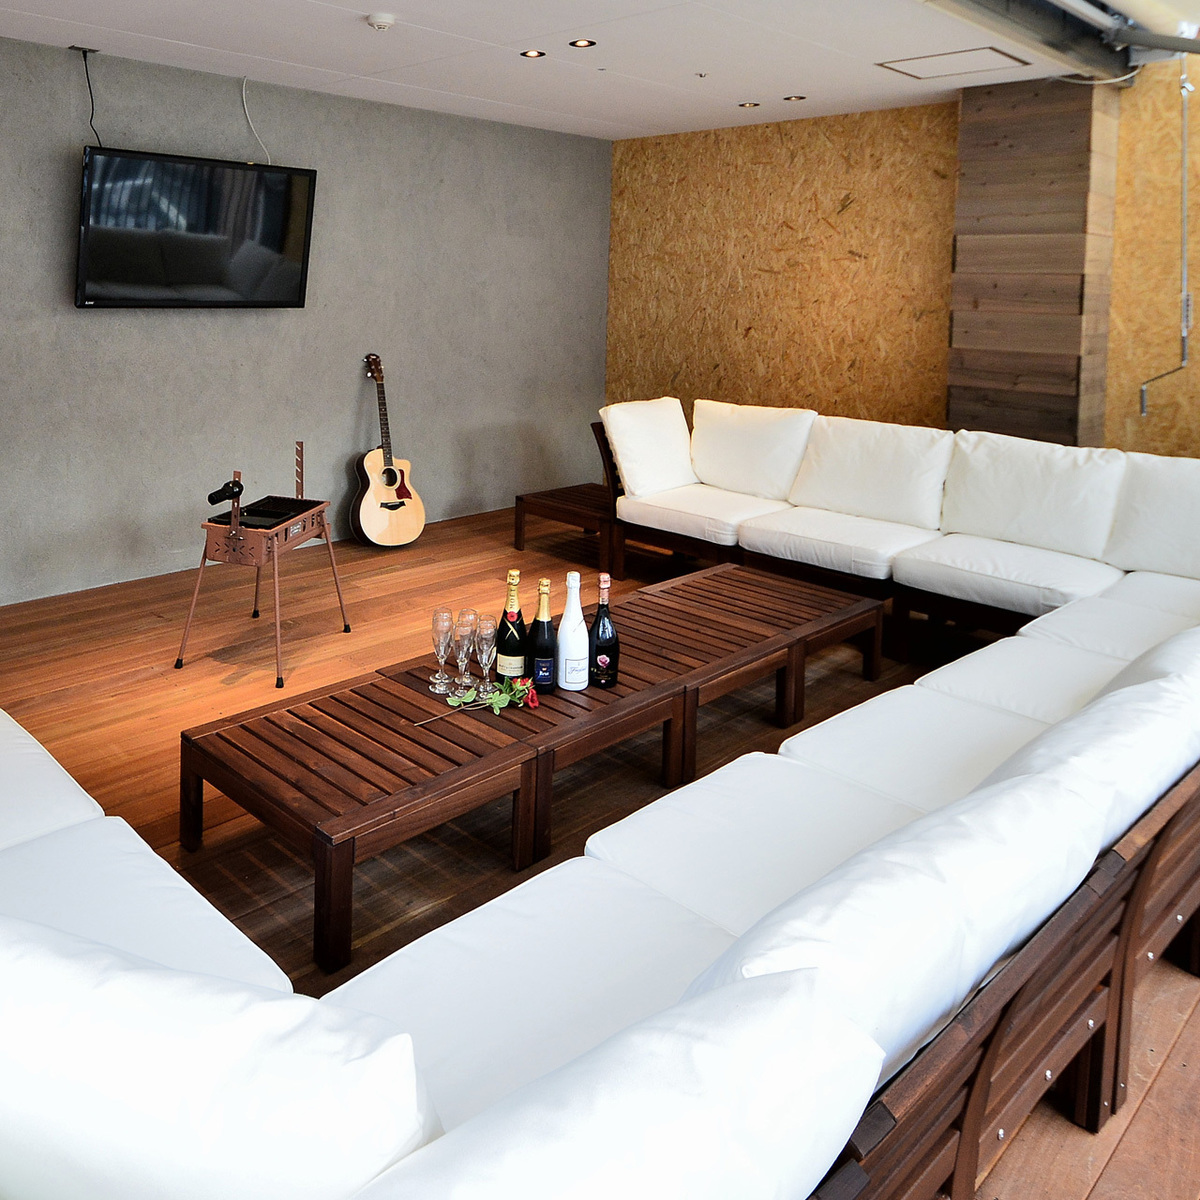 VIP room with monitor and roof sofa